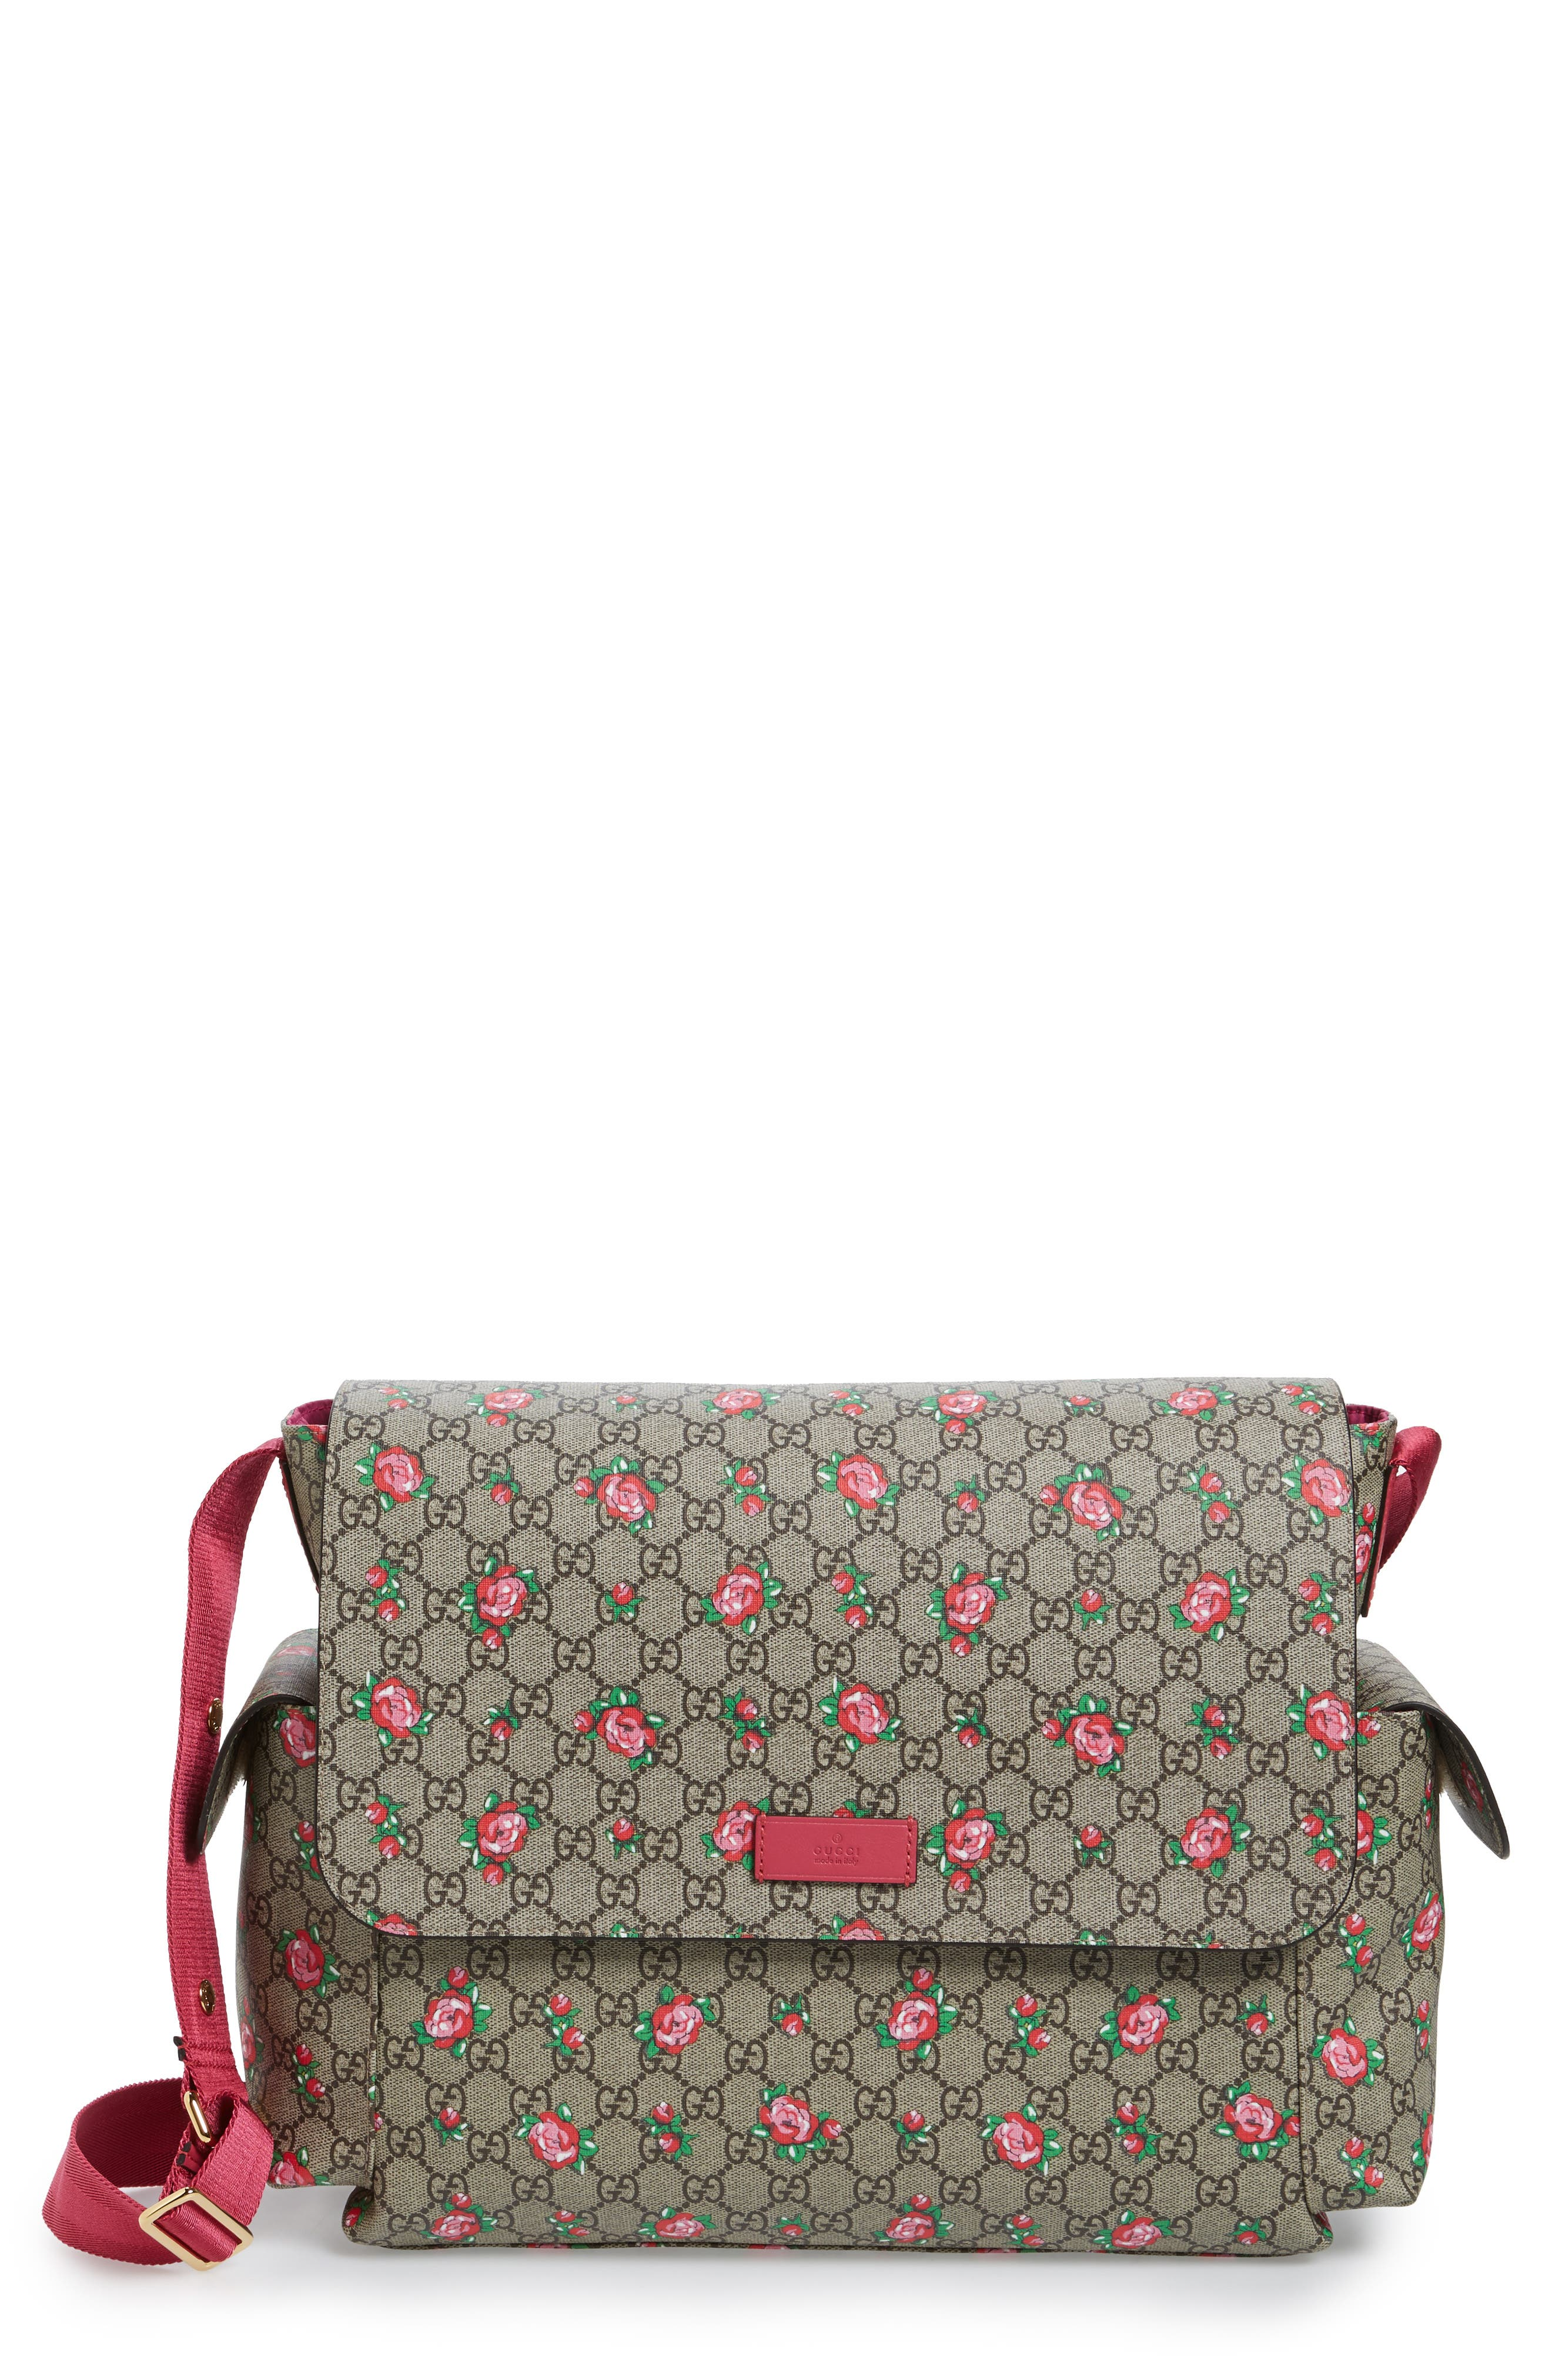 Gucci Rose GG Supreme Coated Canvas Diaper Bag